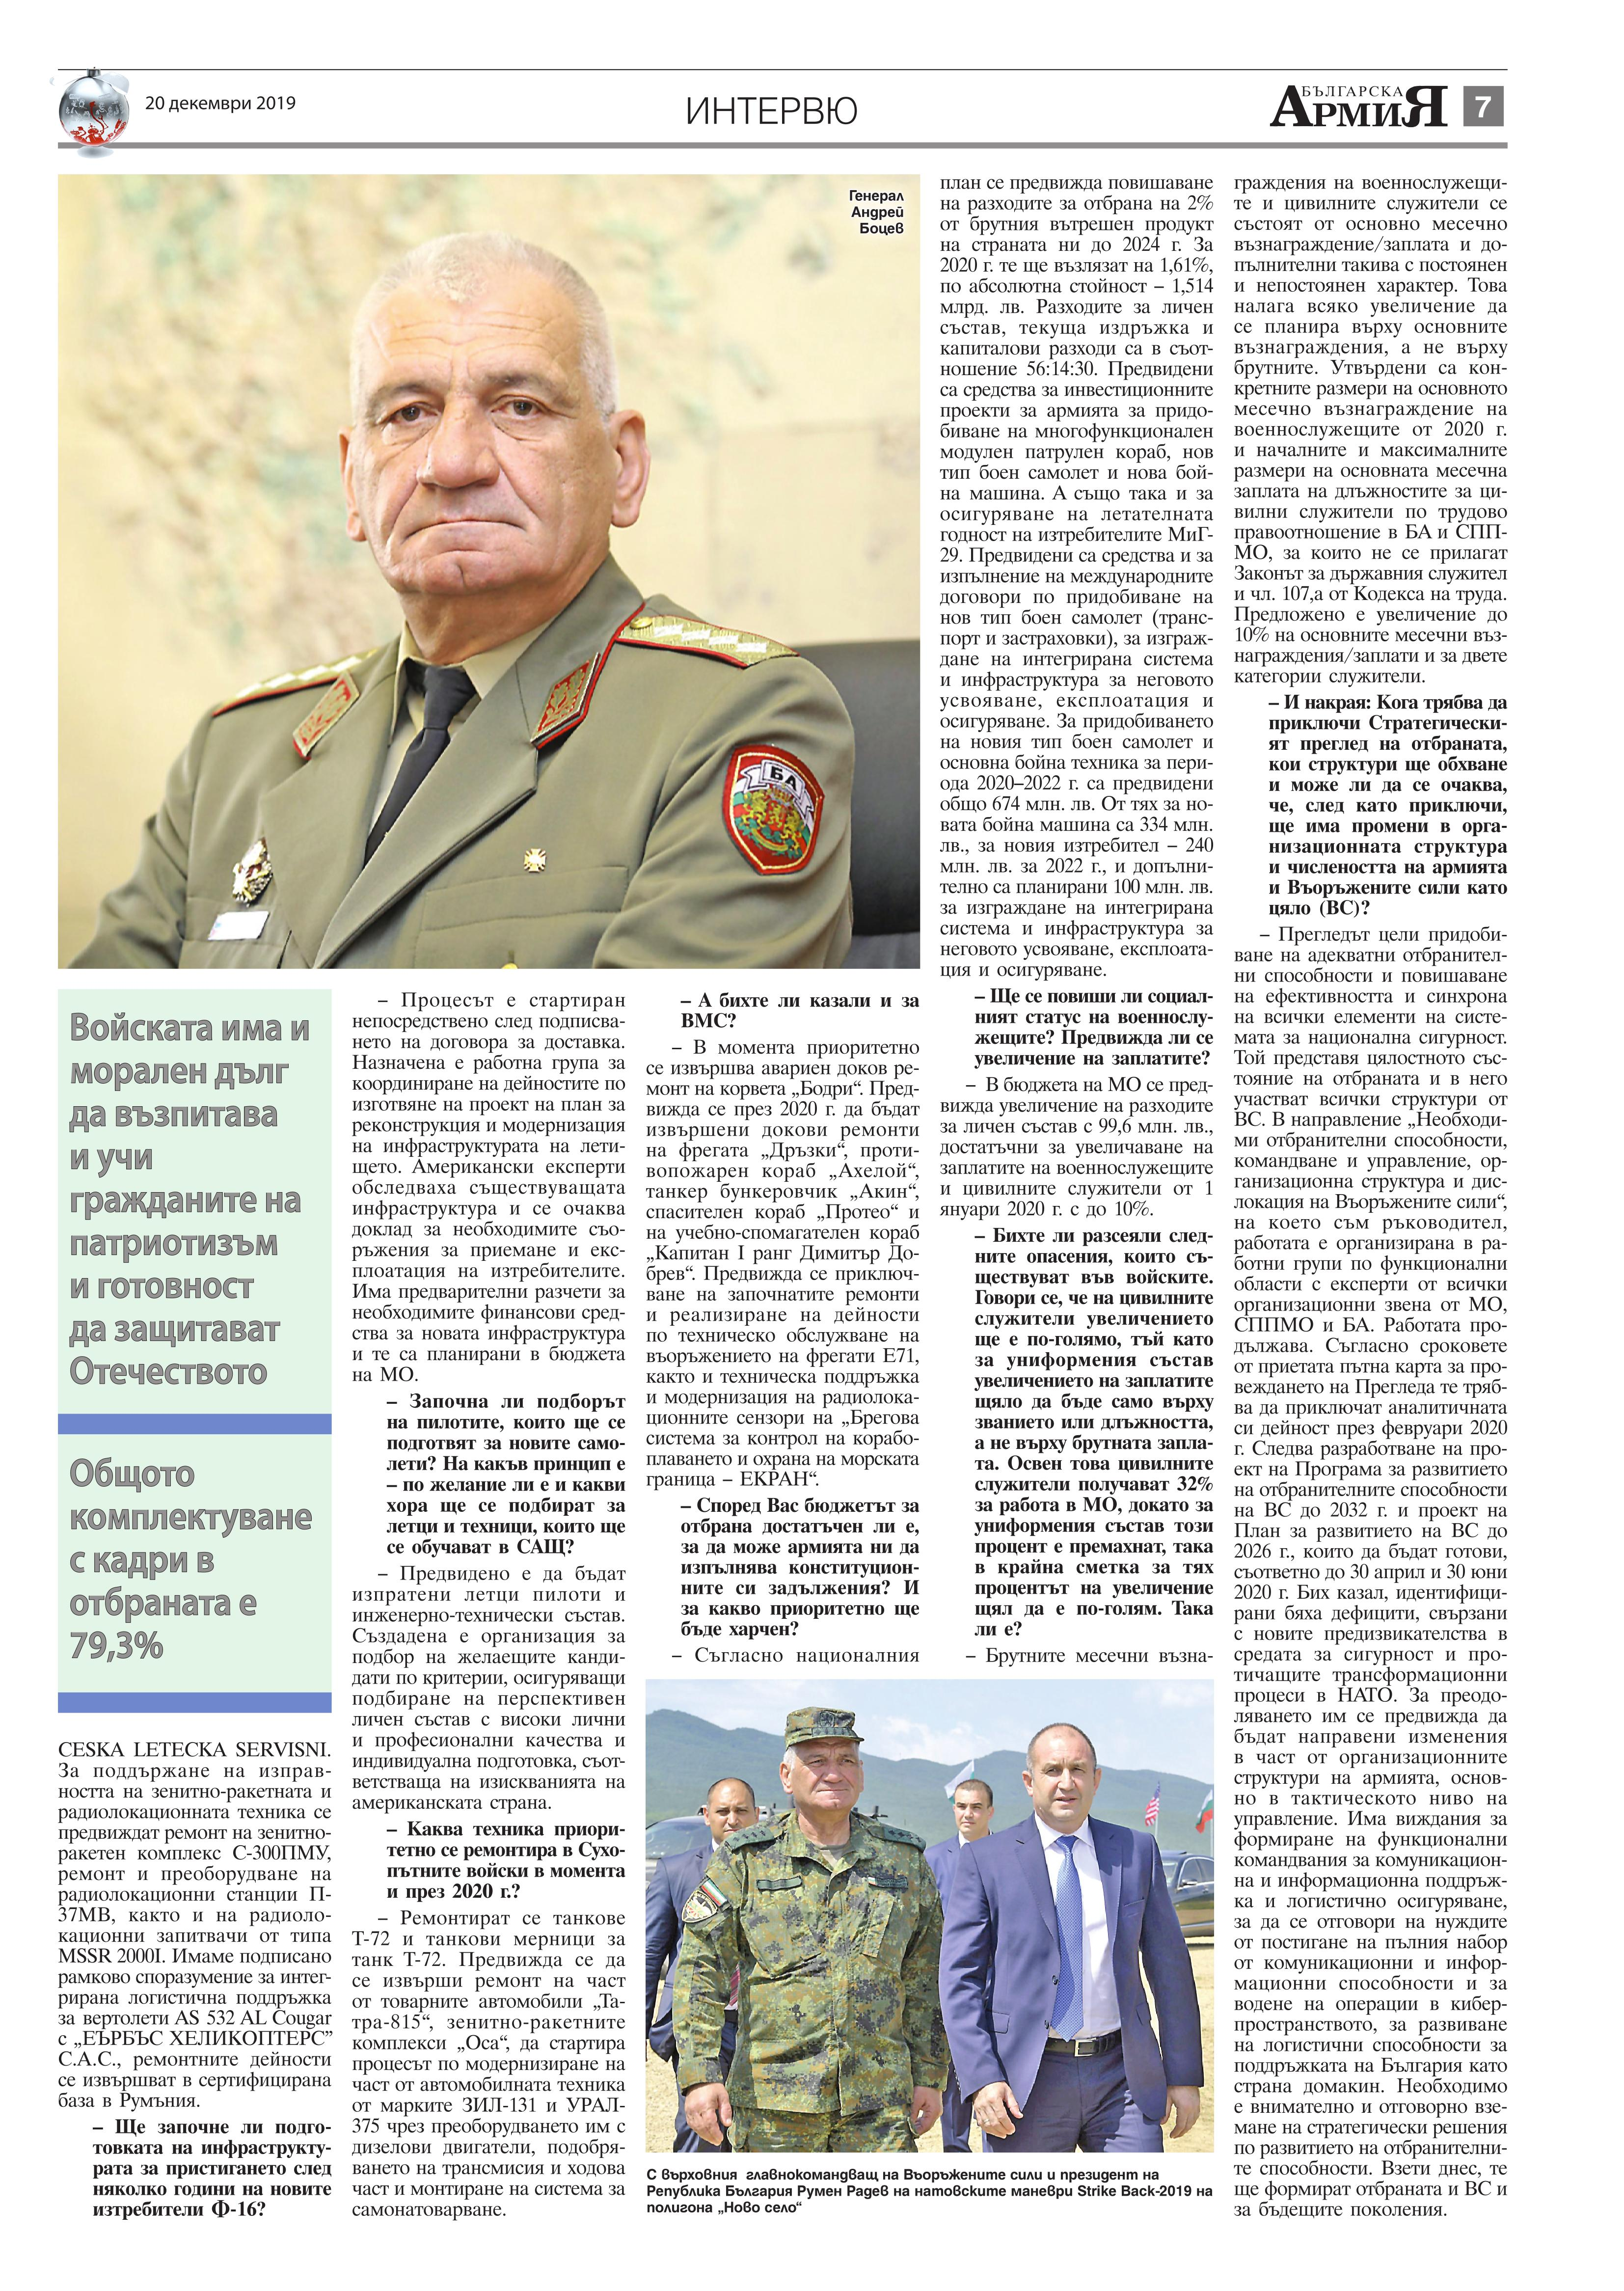 https://armymedia.bg/wp-content/uploads/2015/06/07.page1_-117.jpg